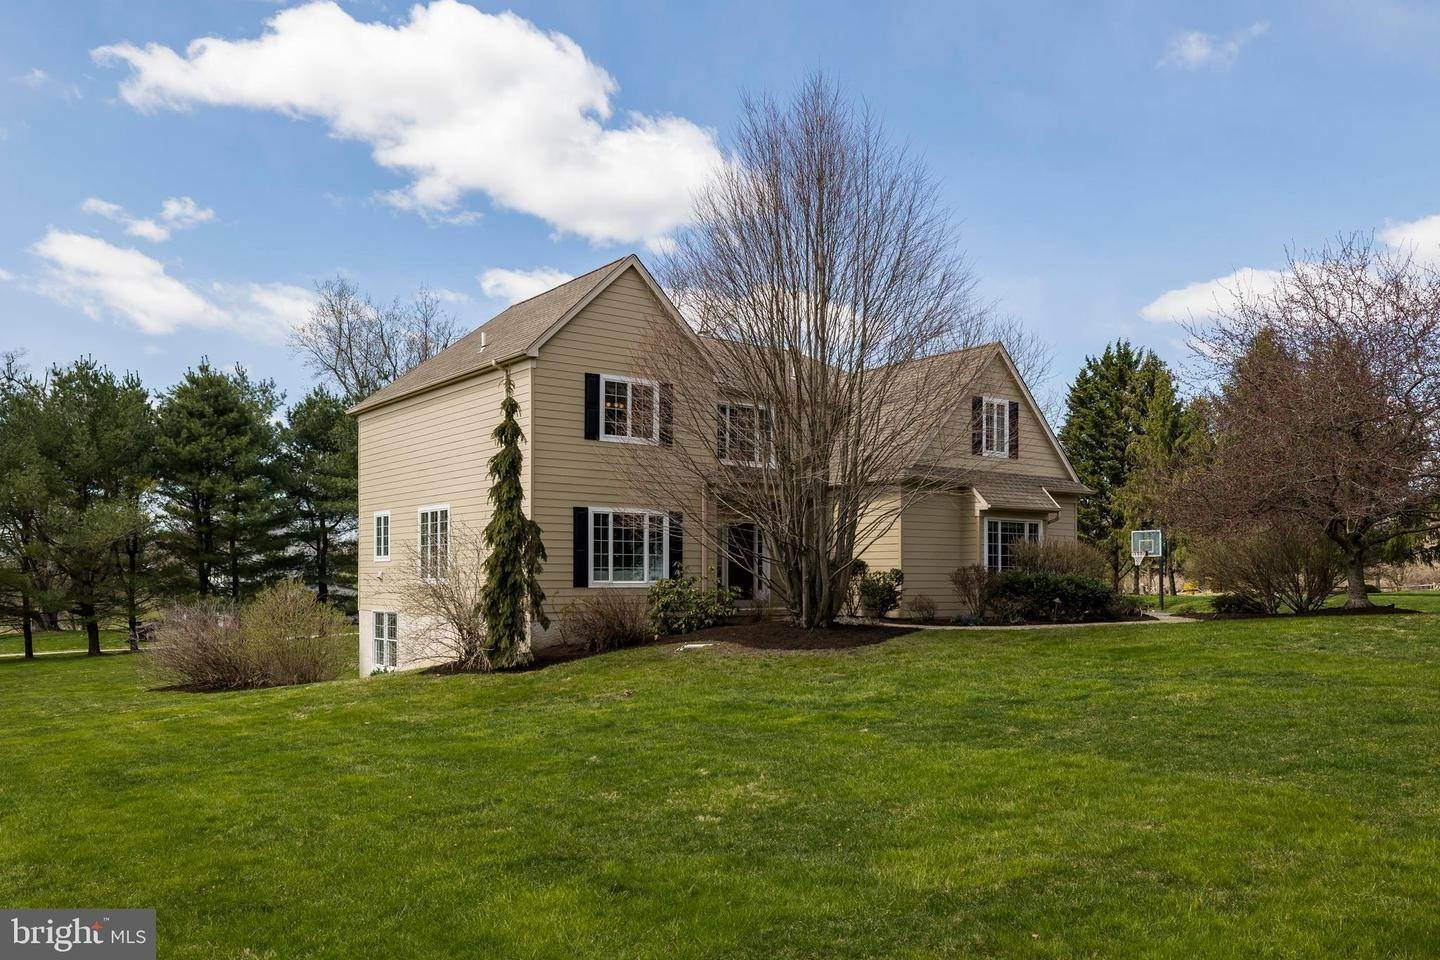 Detached House for Sale at 103 DEER CREEK CROSSING Kennett Square, Pennsylvania 19348 United States